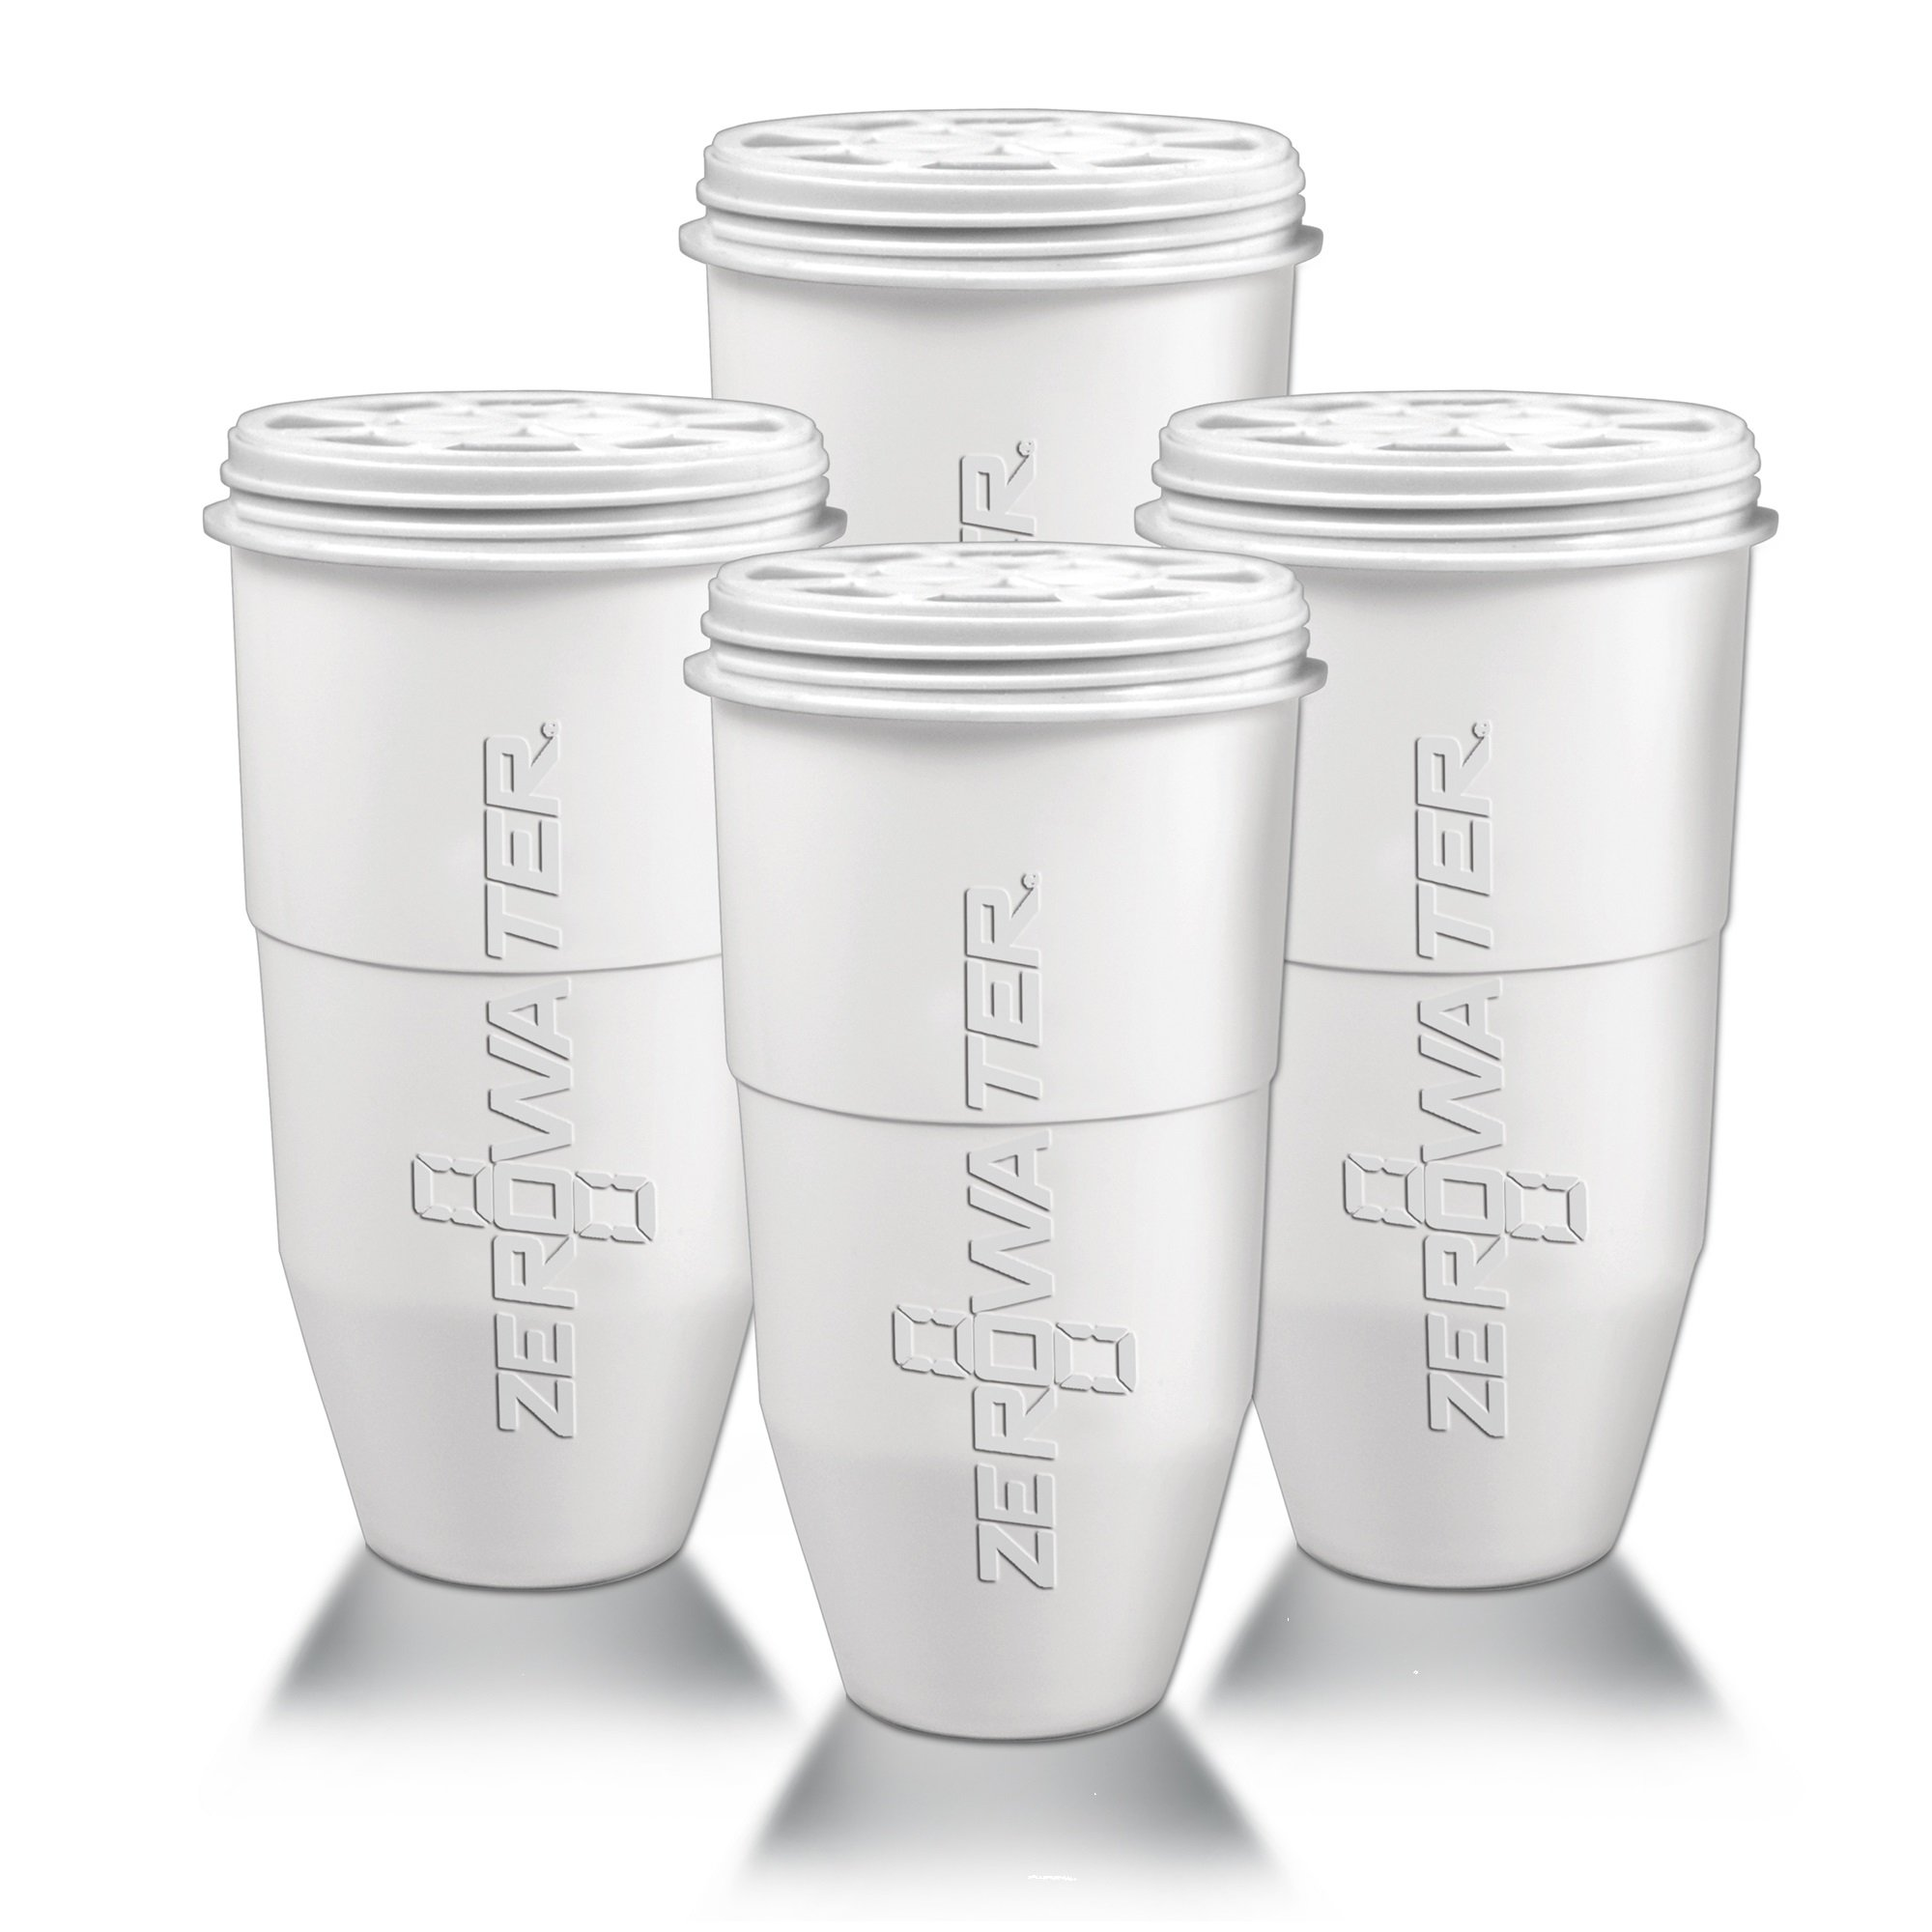 ZeroWater Replacement Filter for Pitchers 6 Pack